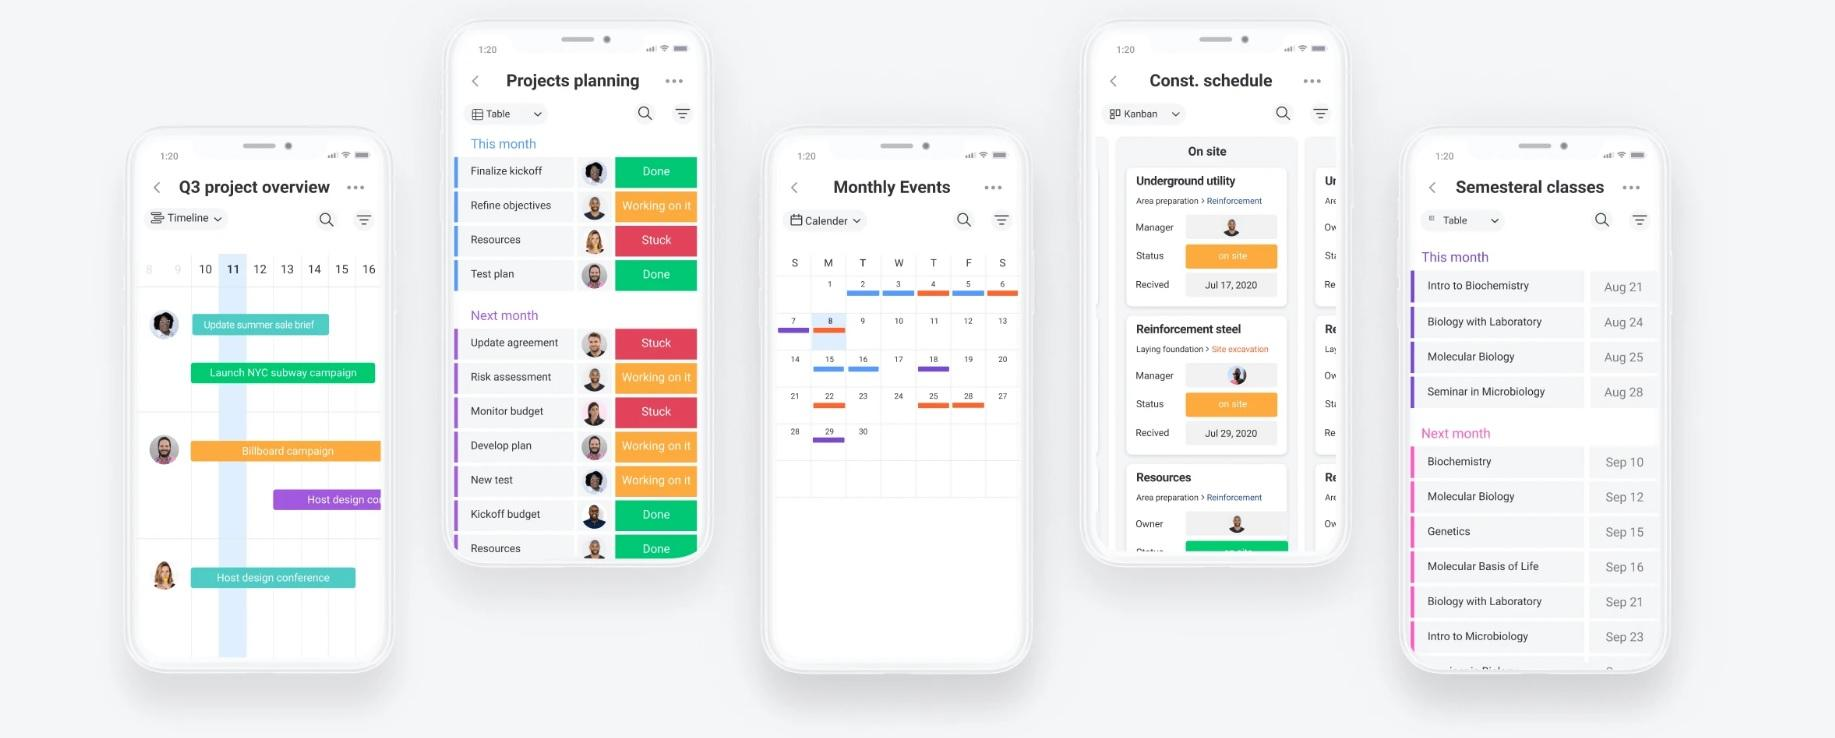 Monday's mobile app for both Android and iOS